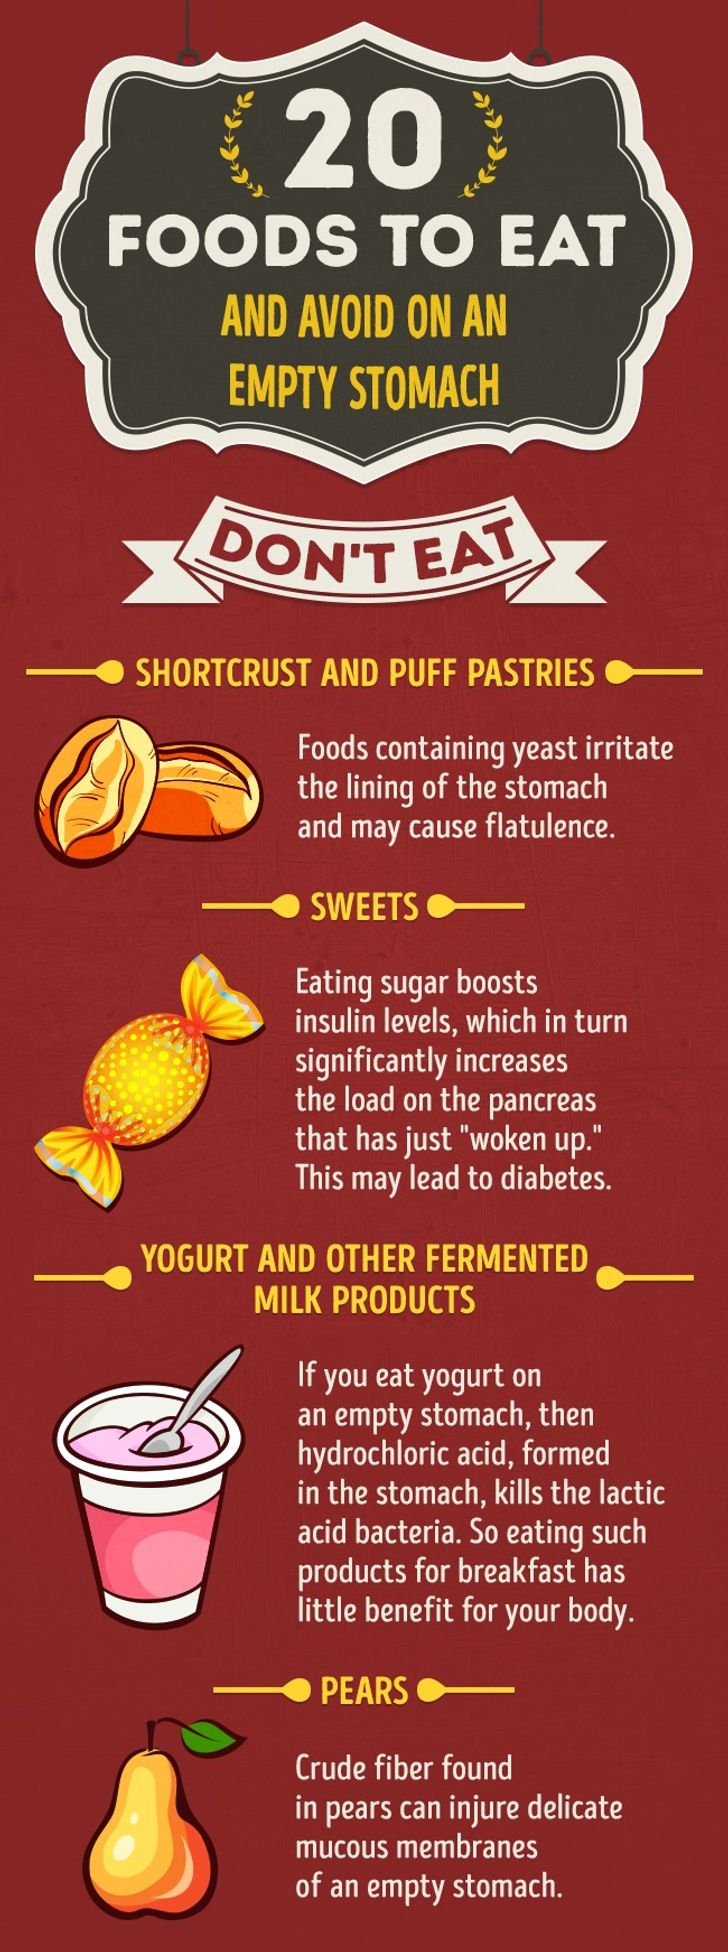 20Foods toEat and Avoid onanEmpty Stomach